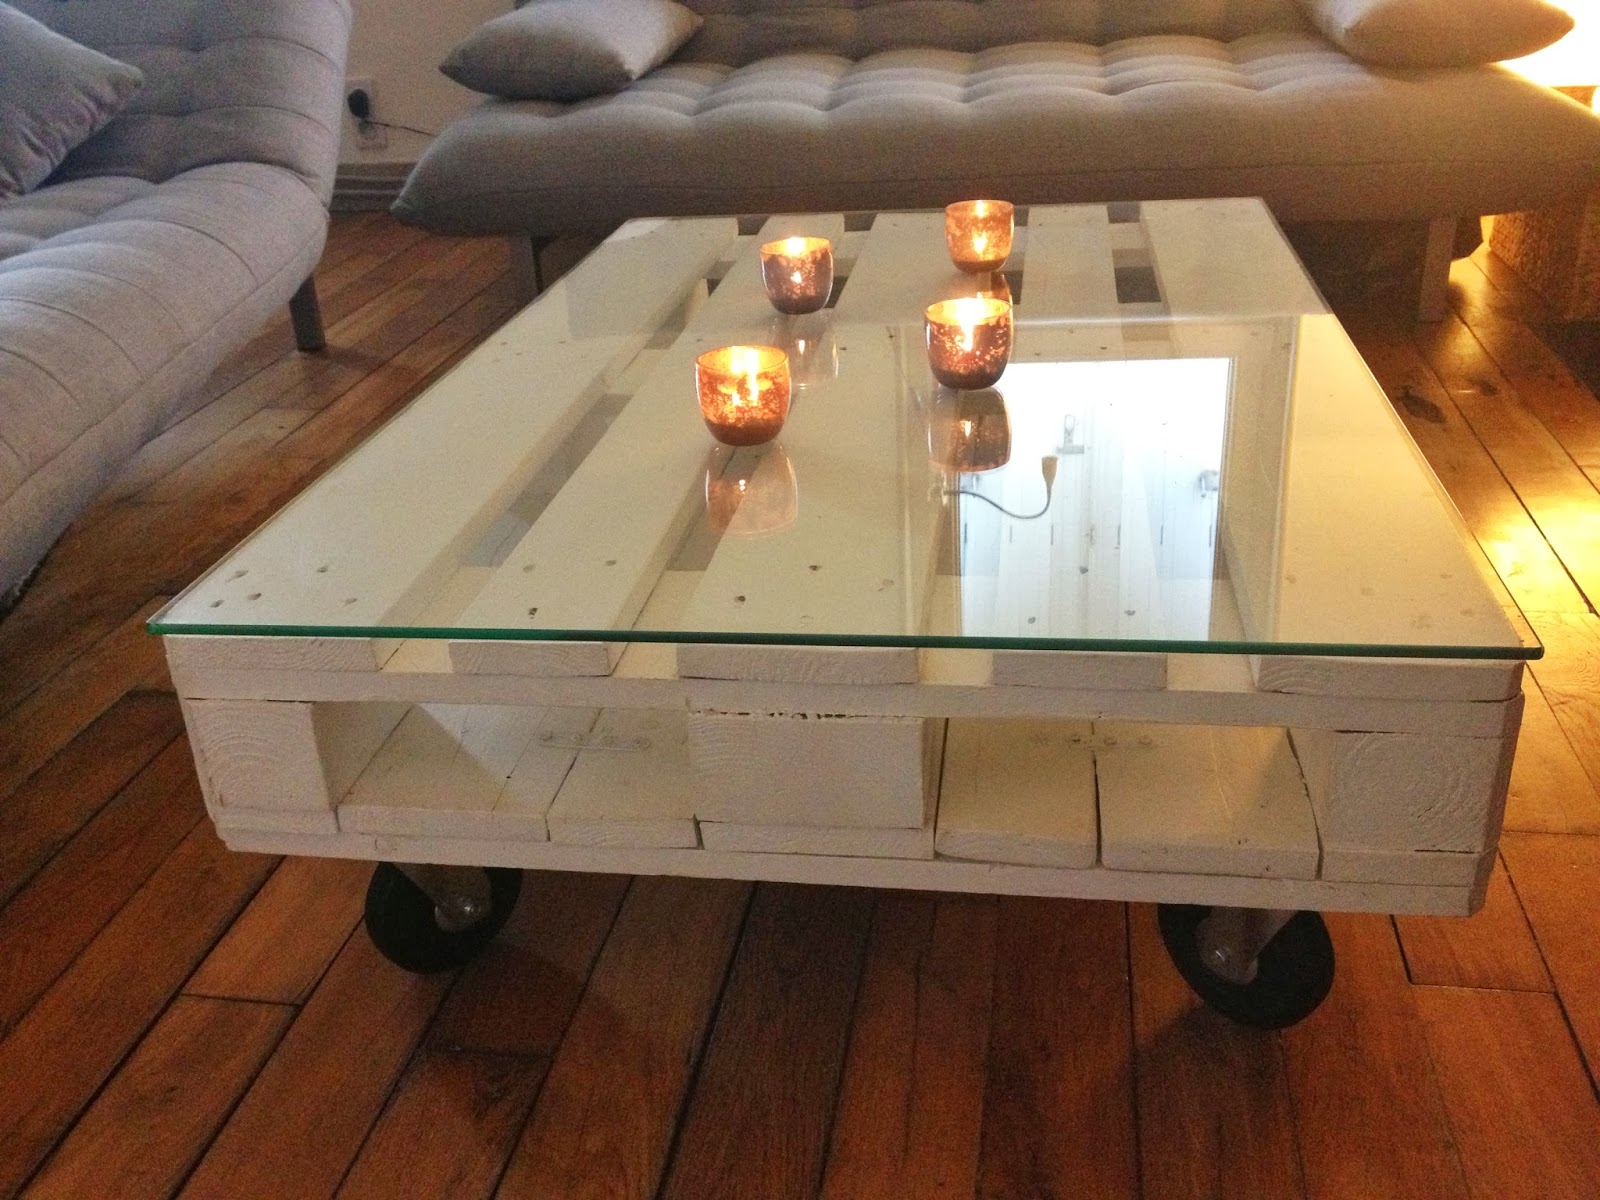 Diy une table basse en palette la clamartoise - Comment faire une table basse en palette ...